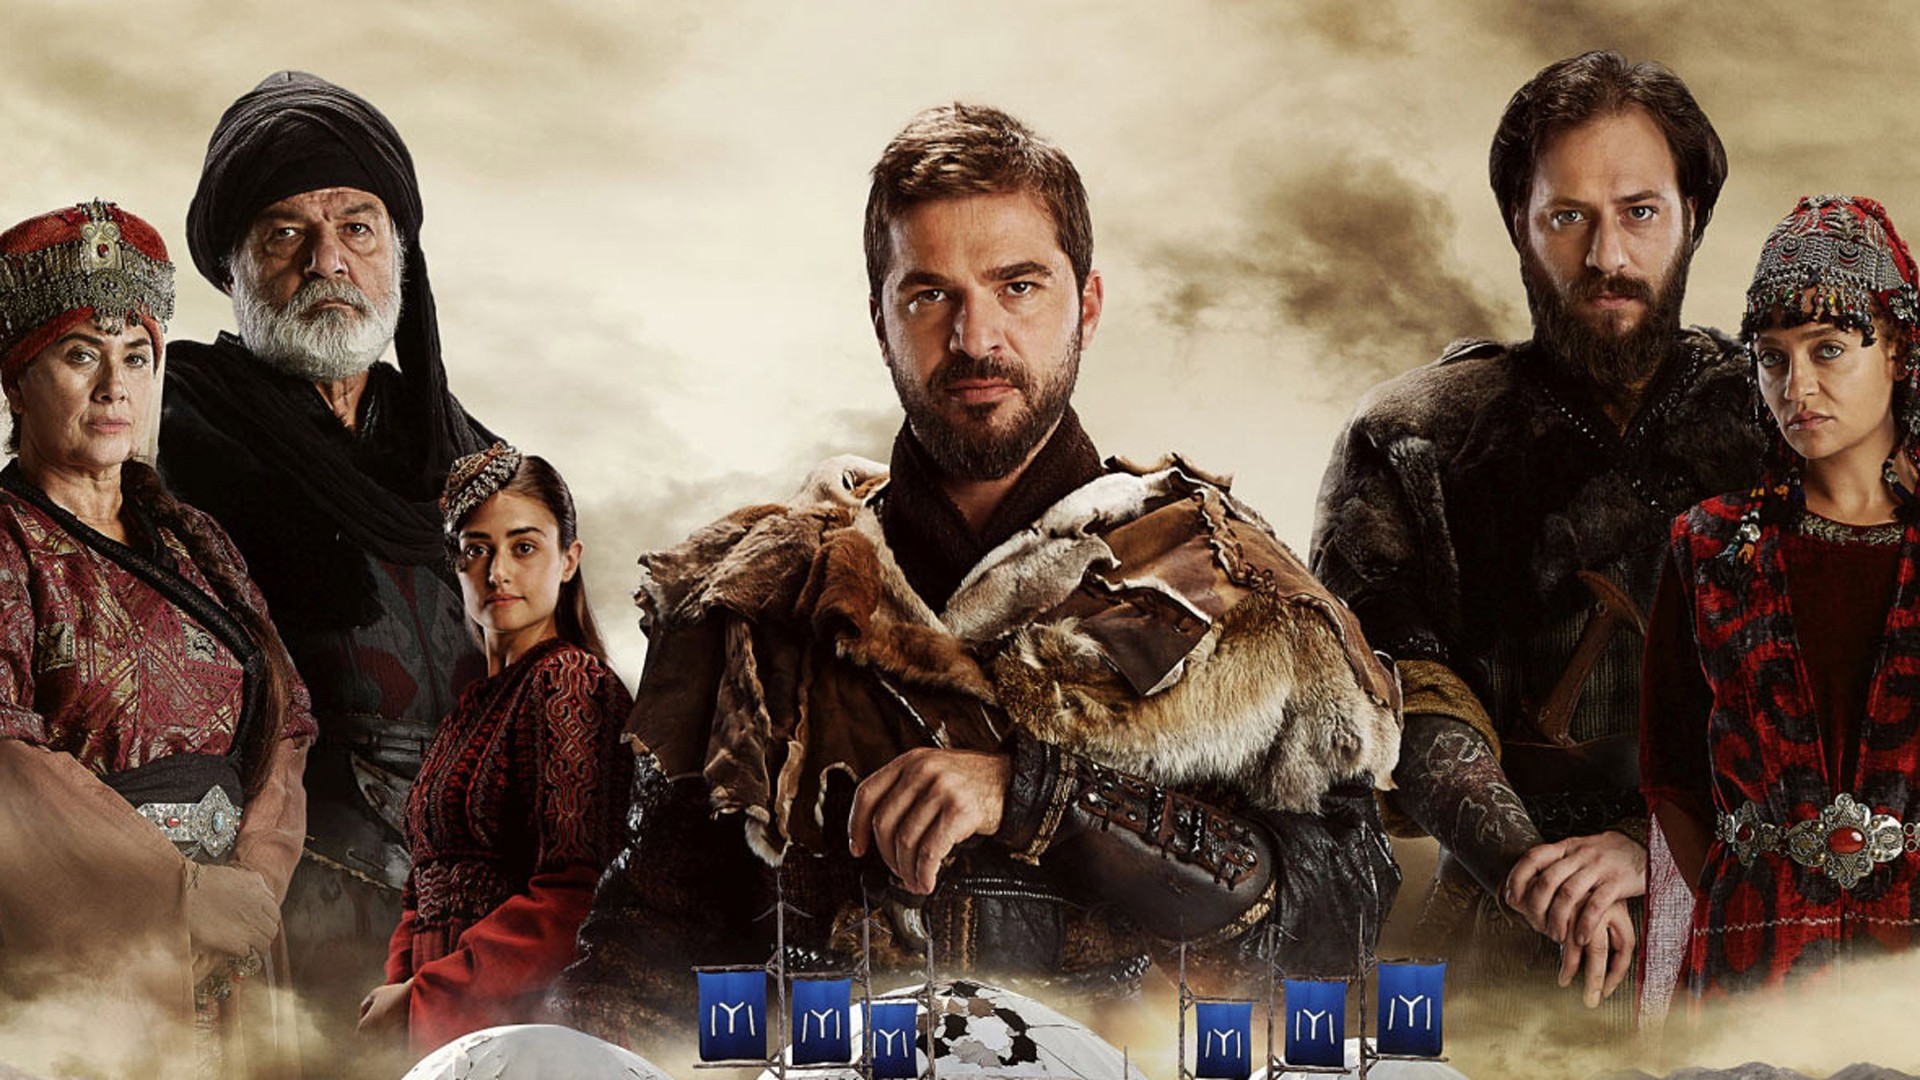 Resurrection: Ertugrul Is The New Standard for TV (review